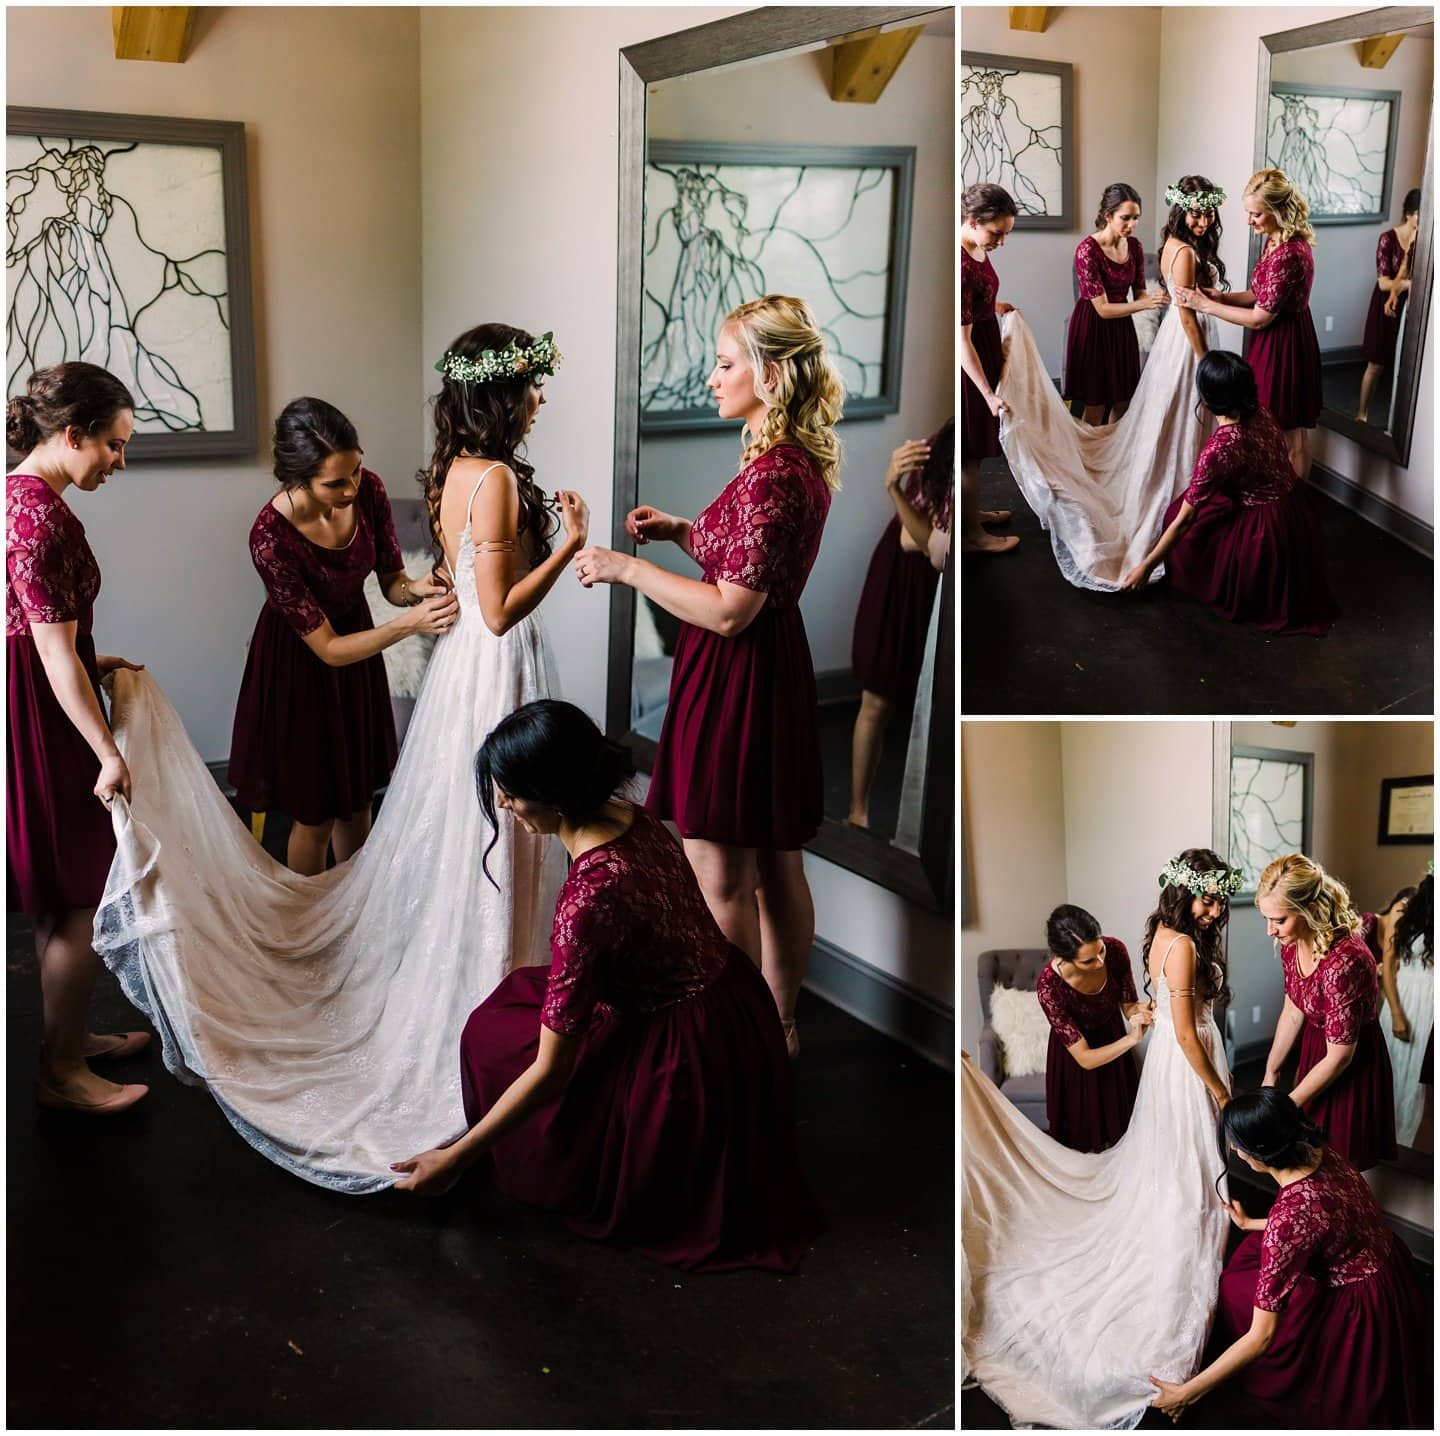 The Gray Dove Wedding, The Gray Dove Wedding- Nina and Coty, Derek Halkett Photography